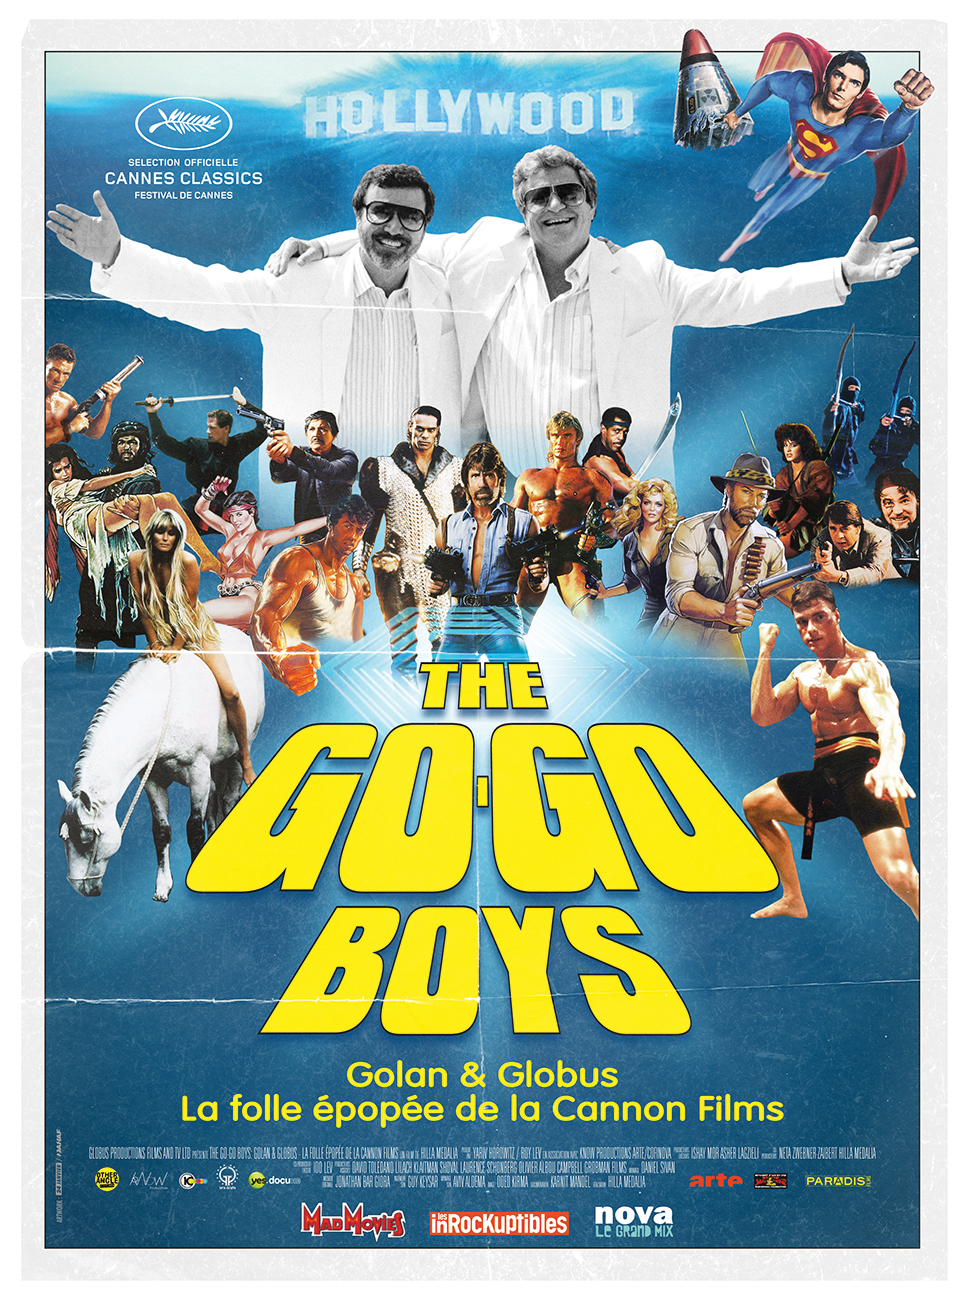 Últimas películas que has visto (las votaciones de la liga en el primer post) - Página 14 CIBASS-The-go-go-boys-the-inside-story-of-cannon-films